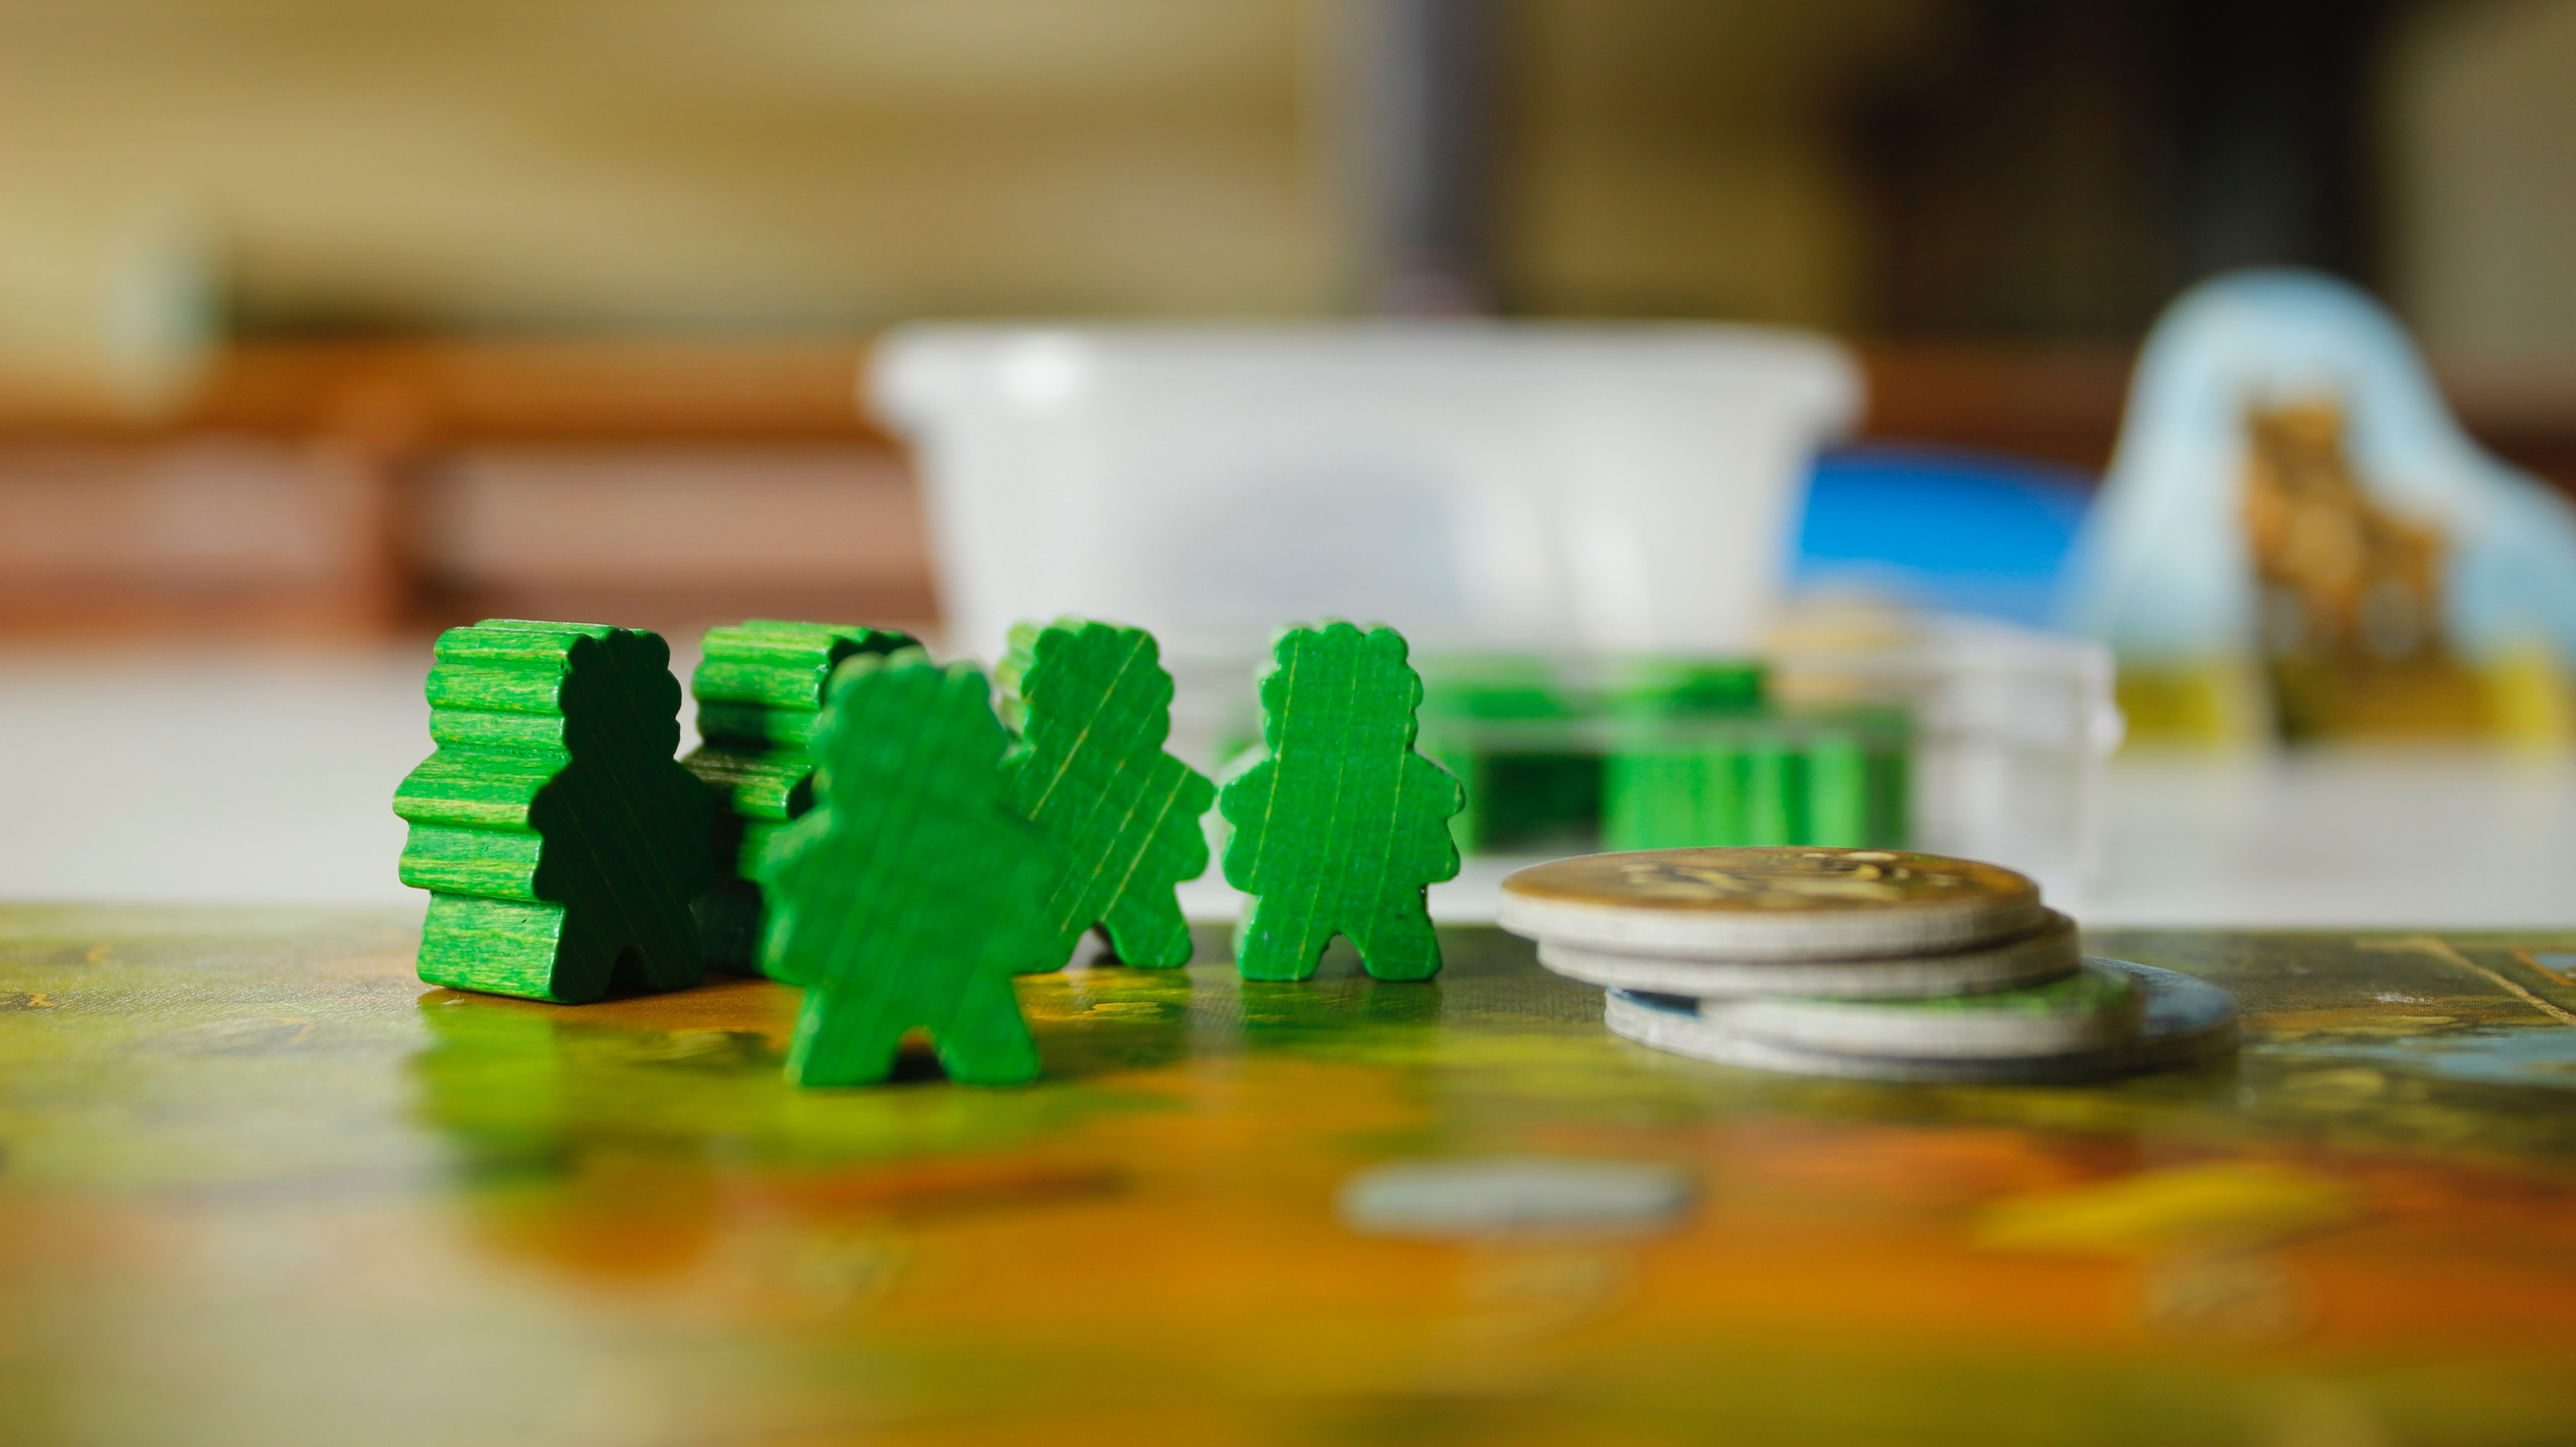 green wooden toys